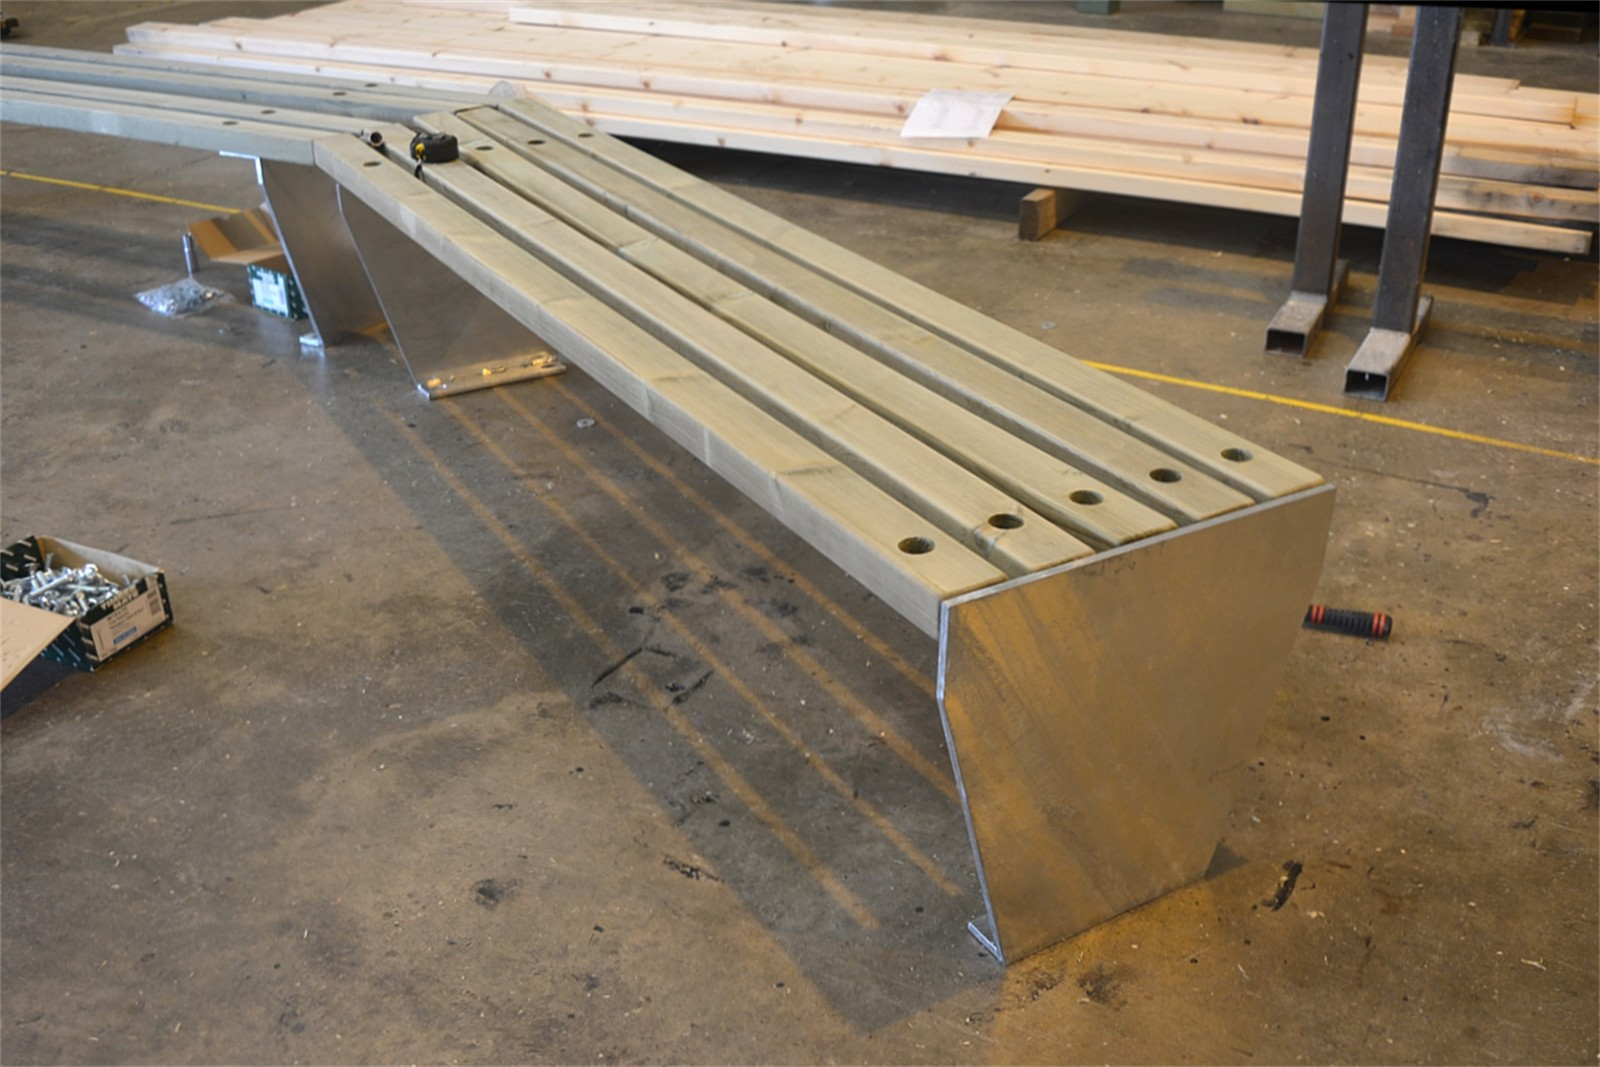 c121t02 - Angled timber slatted bench in manufacture